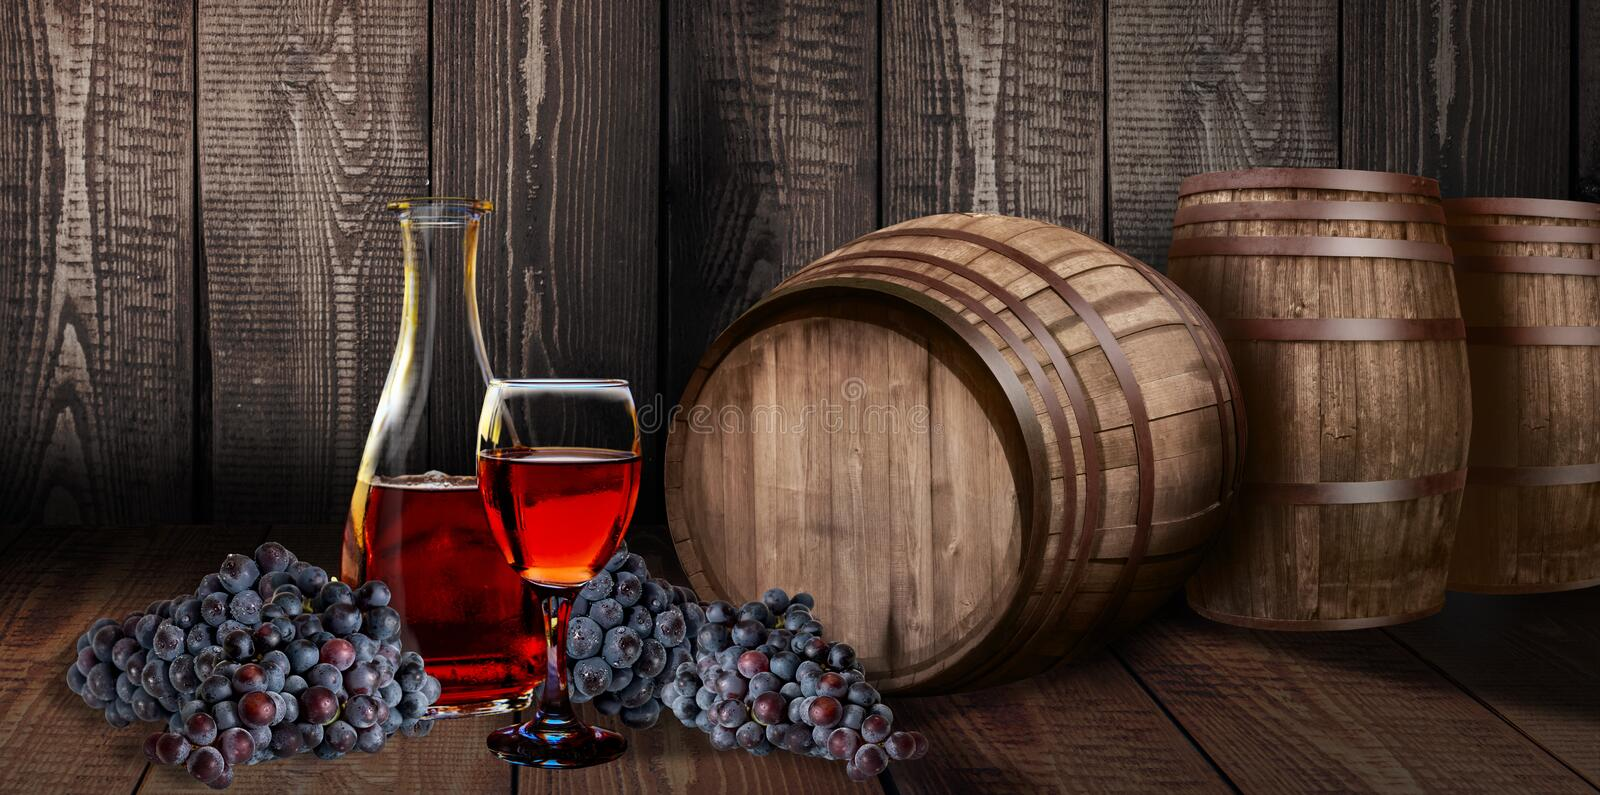 Download Red Wine Glass Bottle With Barrel On Vineyard Wood Stock Photo - Image: 90155024